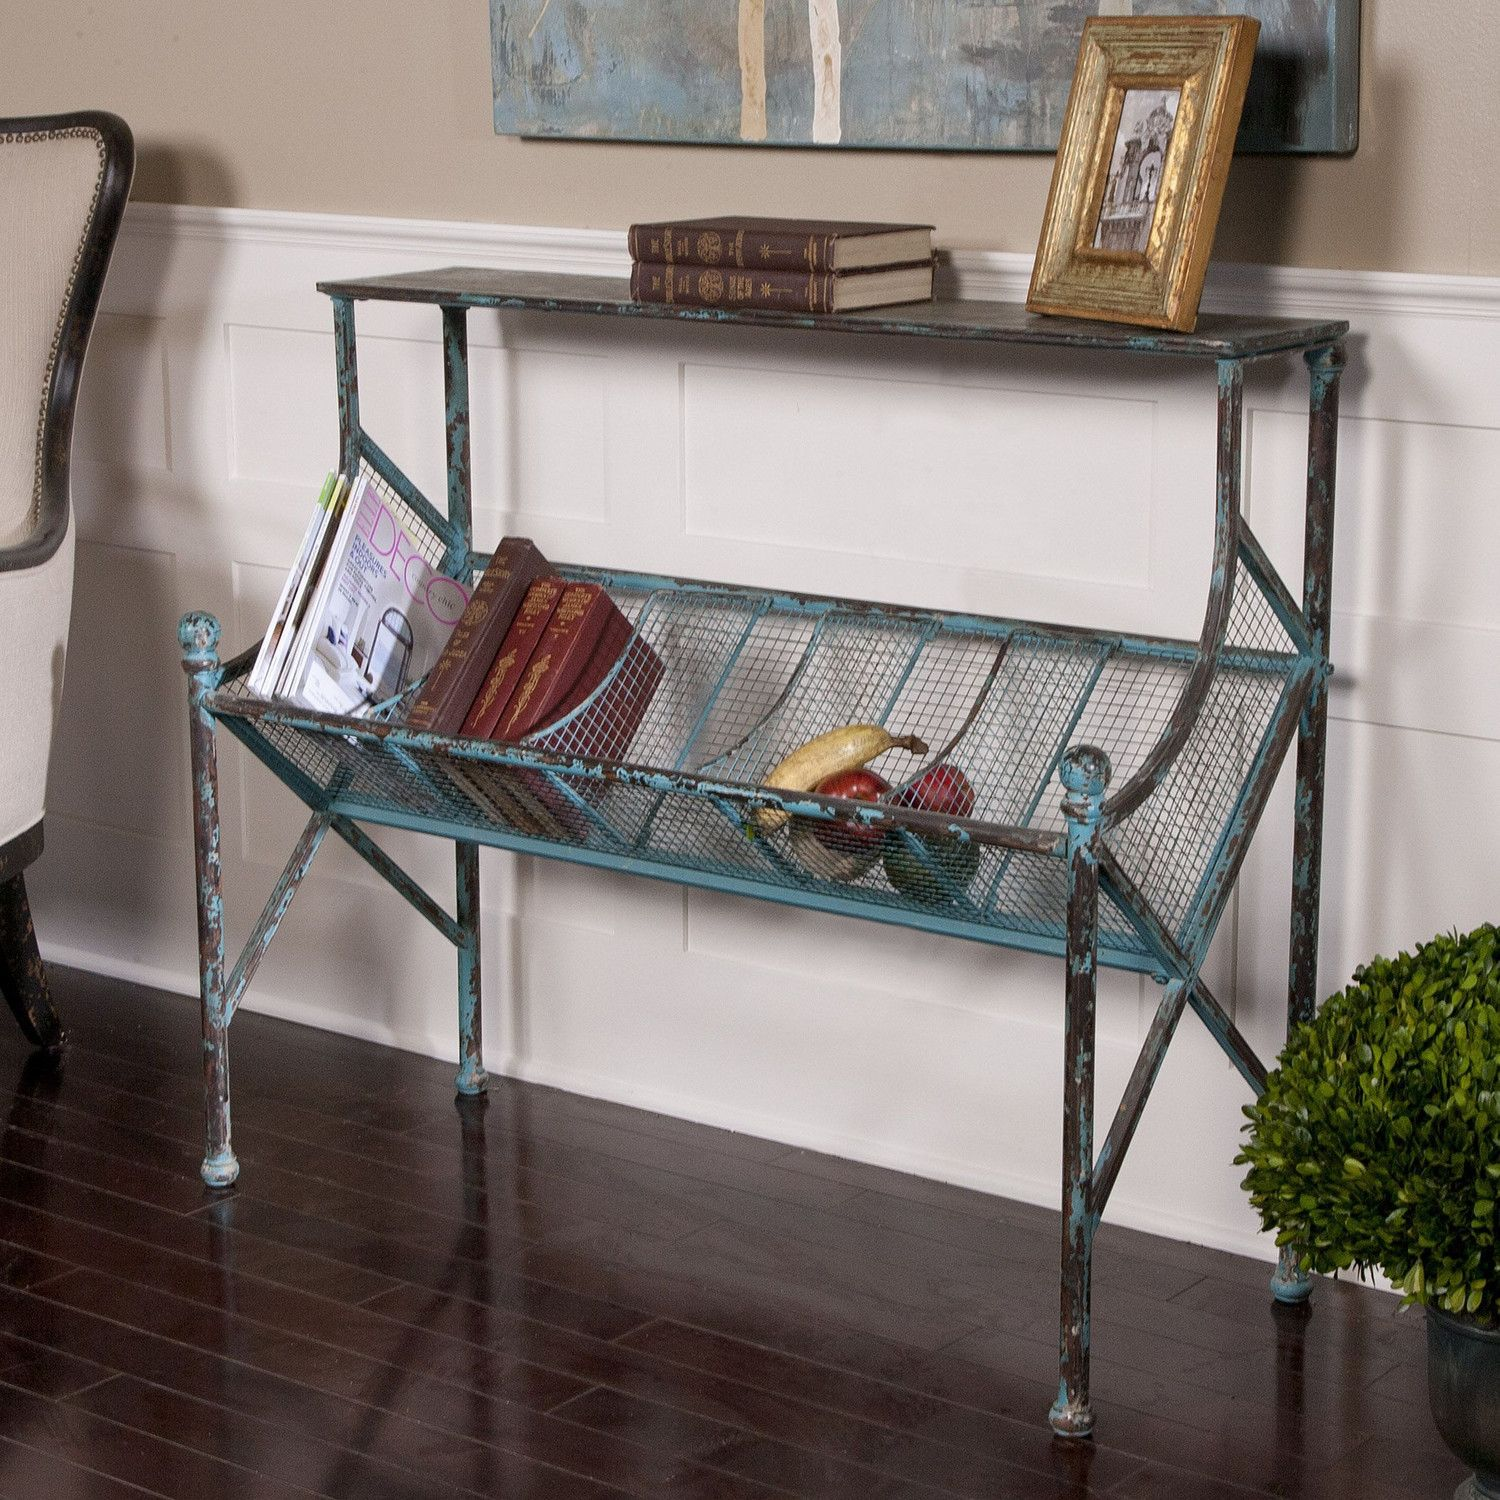 uttermost generosa end table raja dining room sofa asher blue accent narrow entryway cabinet wireless lamp green tablecloth tablecloths and napkins meyda tiffany desk crystal